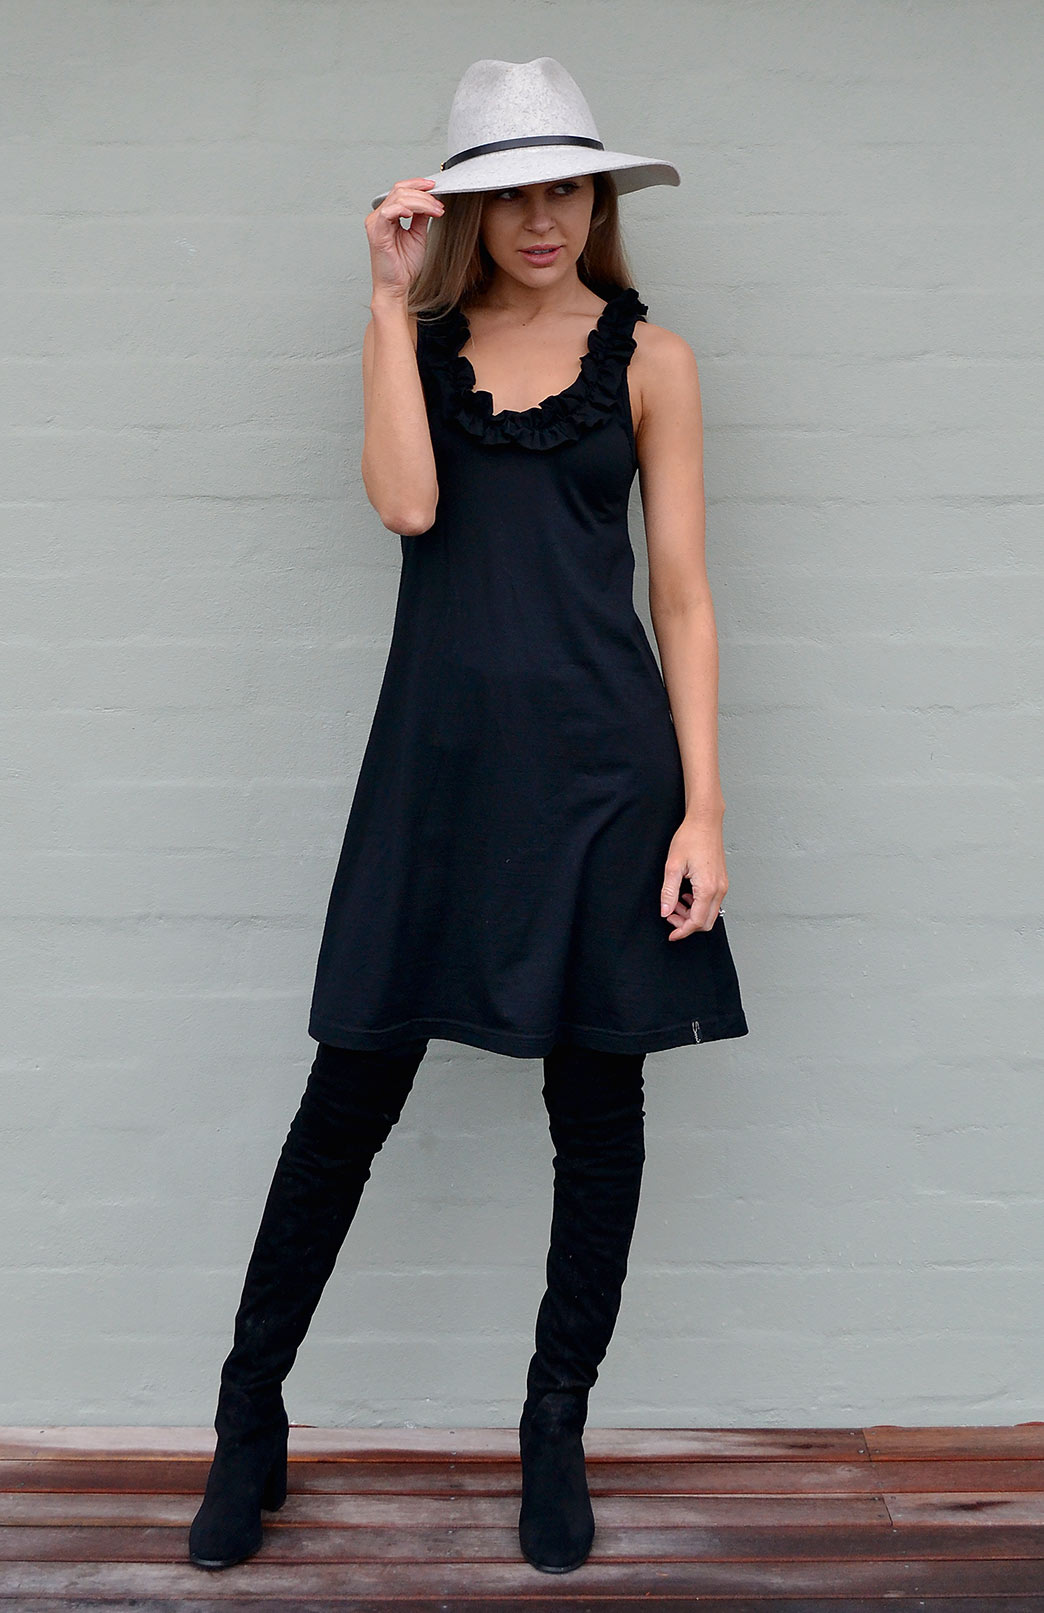 Ruffled Swing Dress - Women's Black Merino Wool Swing Dress with Ruffled Neckline - Smitten Merino Tasmania Australia